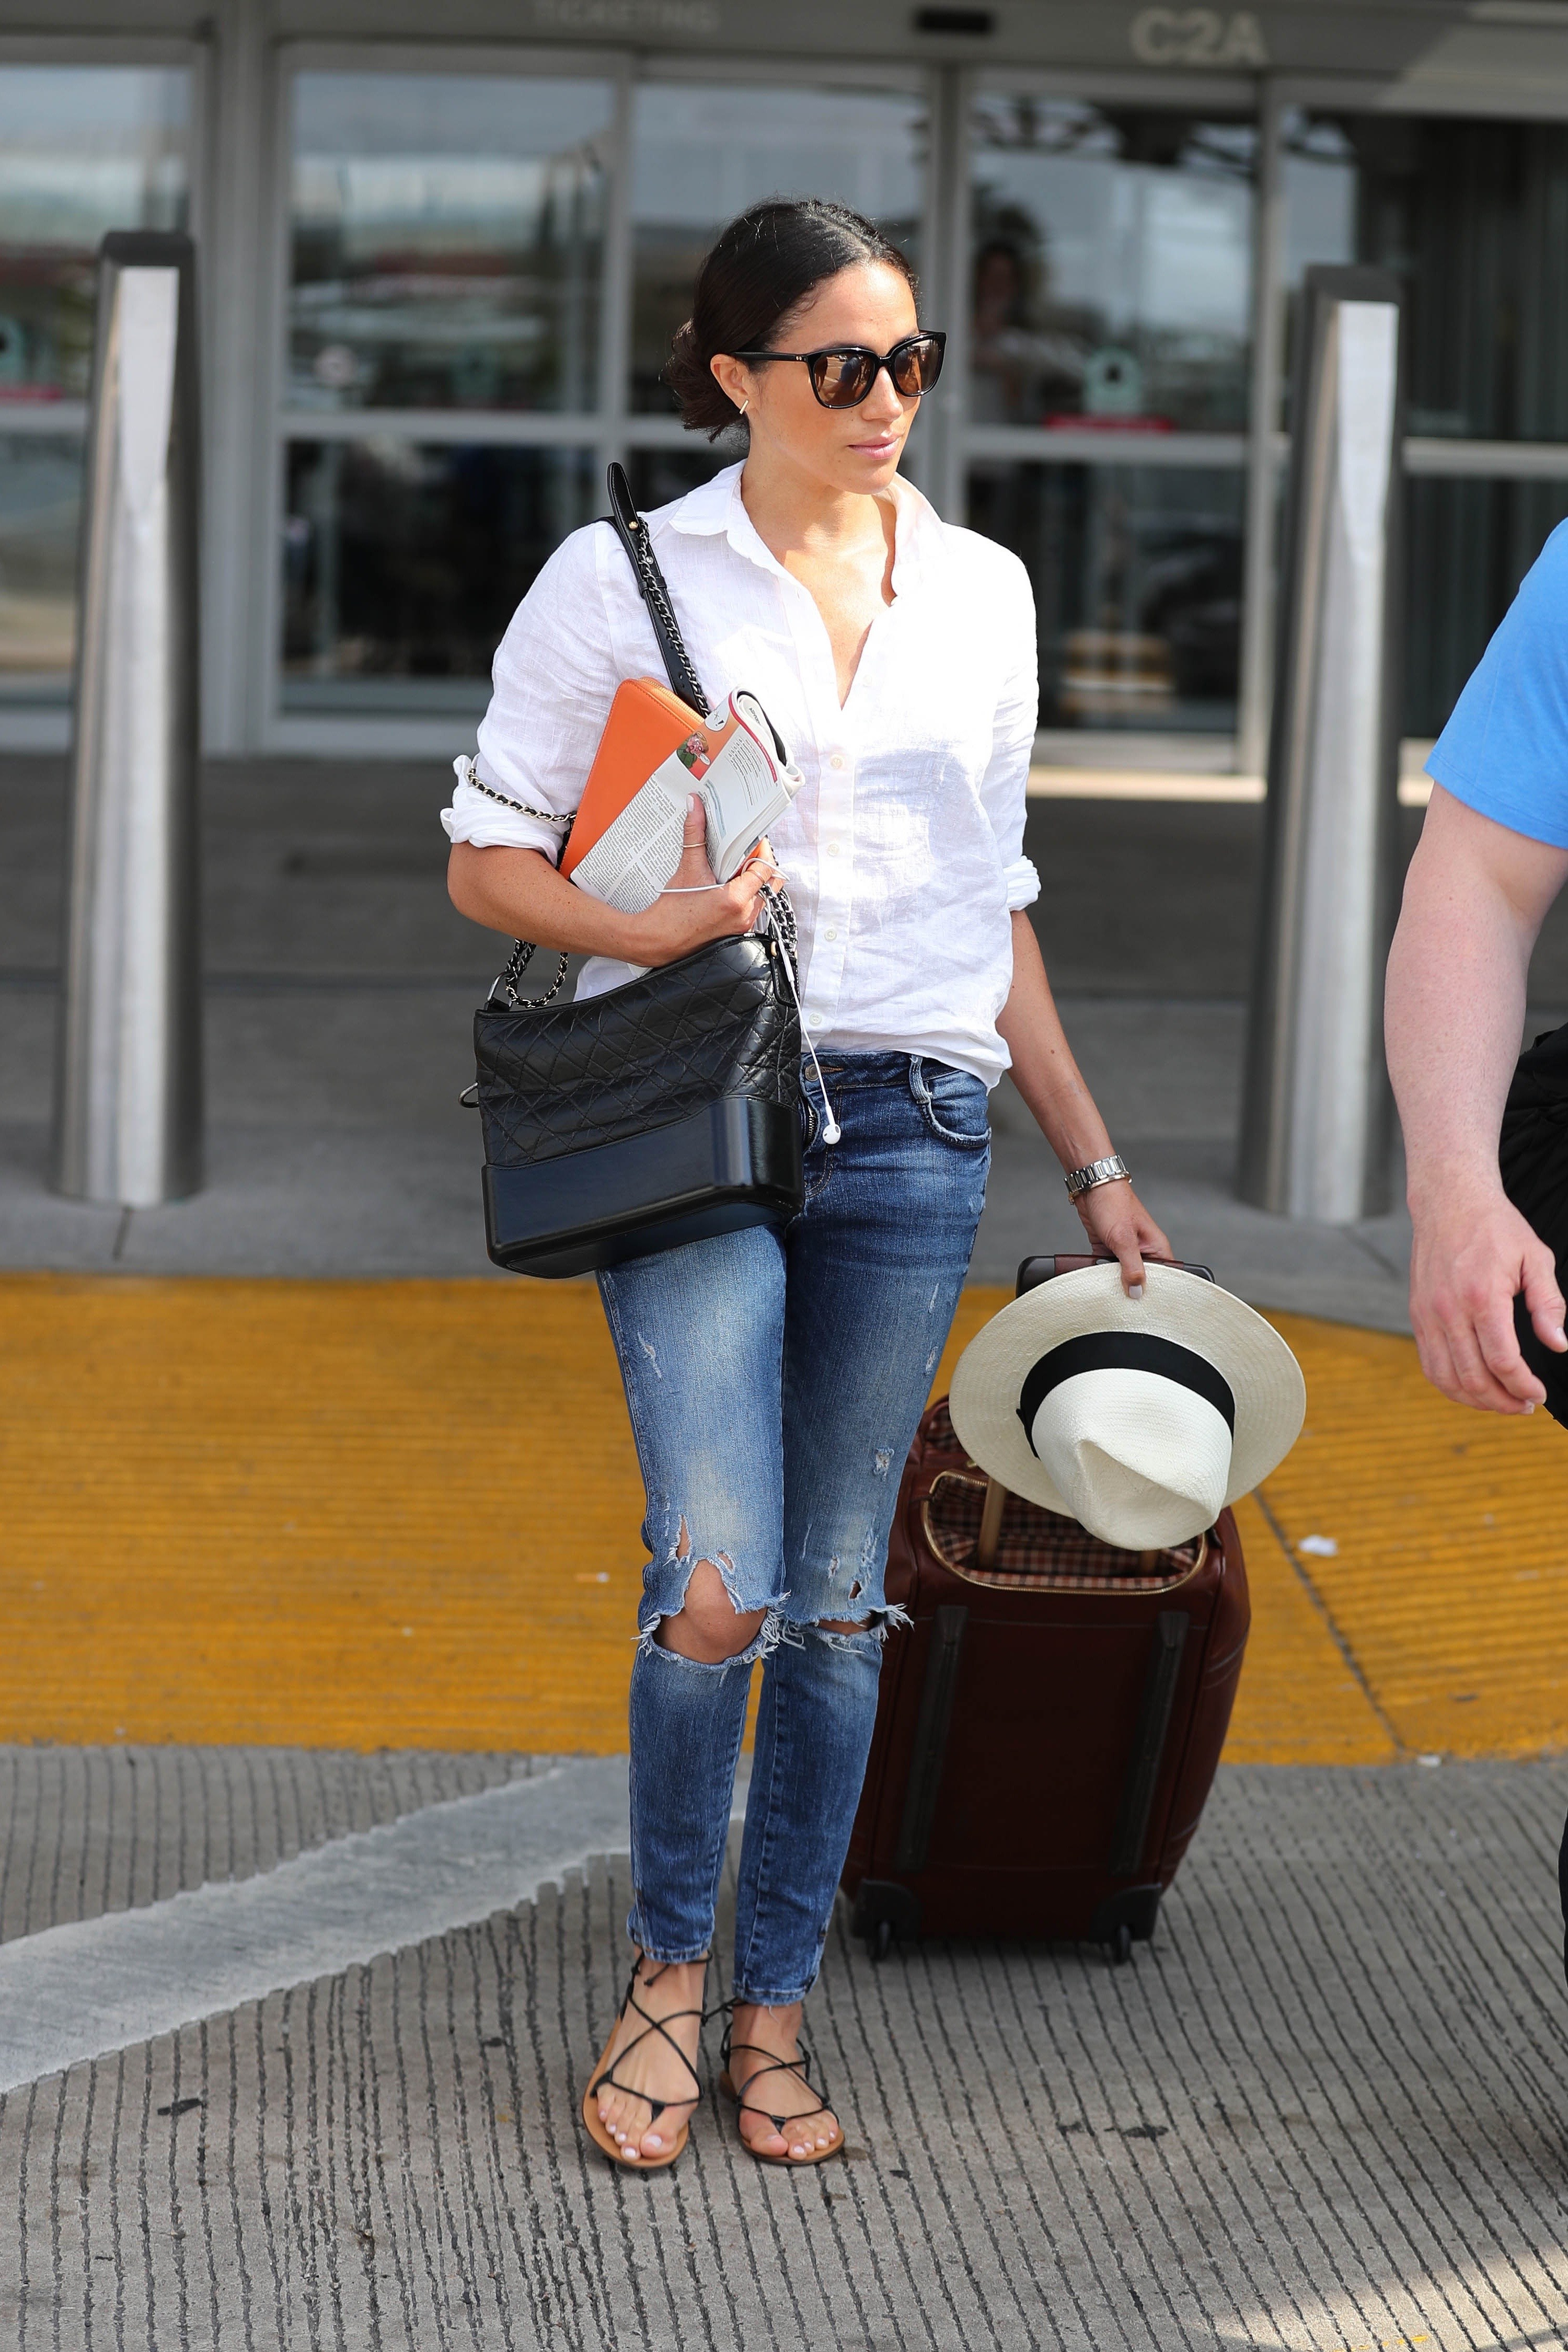 Stylist Saturday Meghan S Chic Airport Style Meghan S